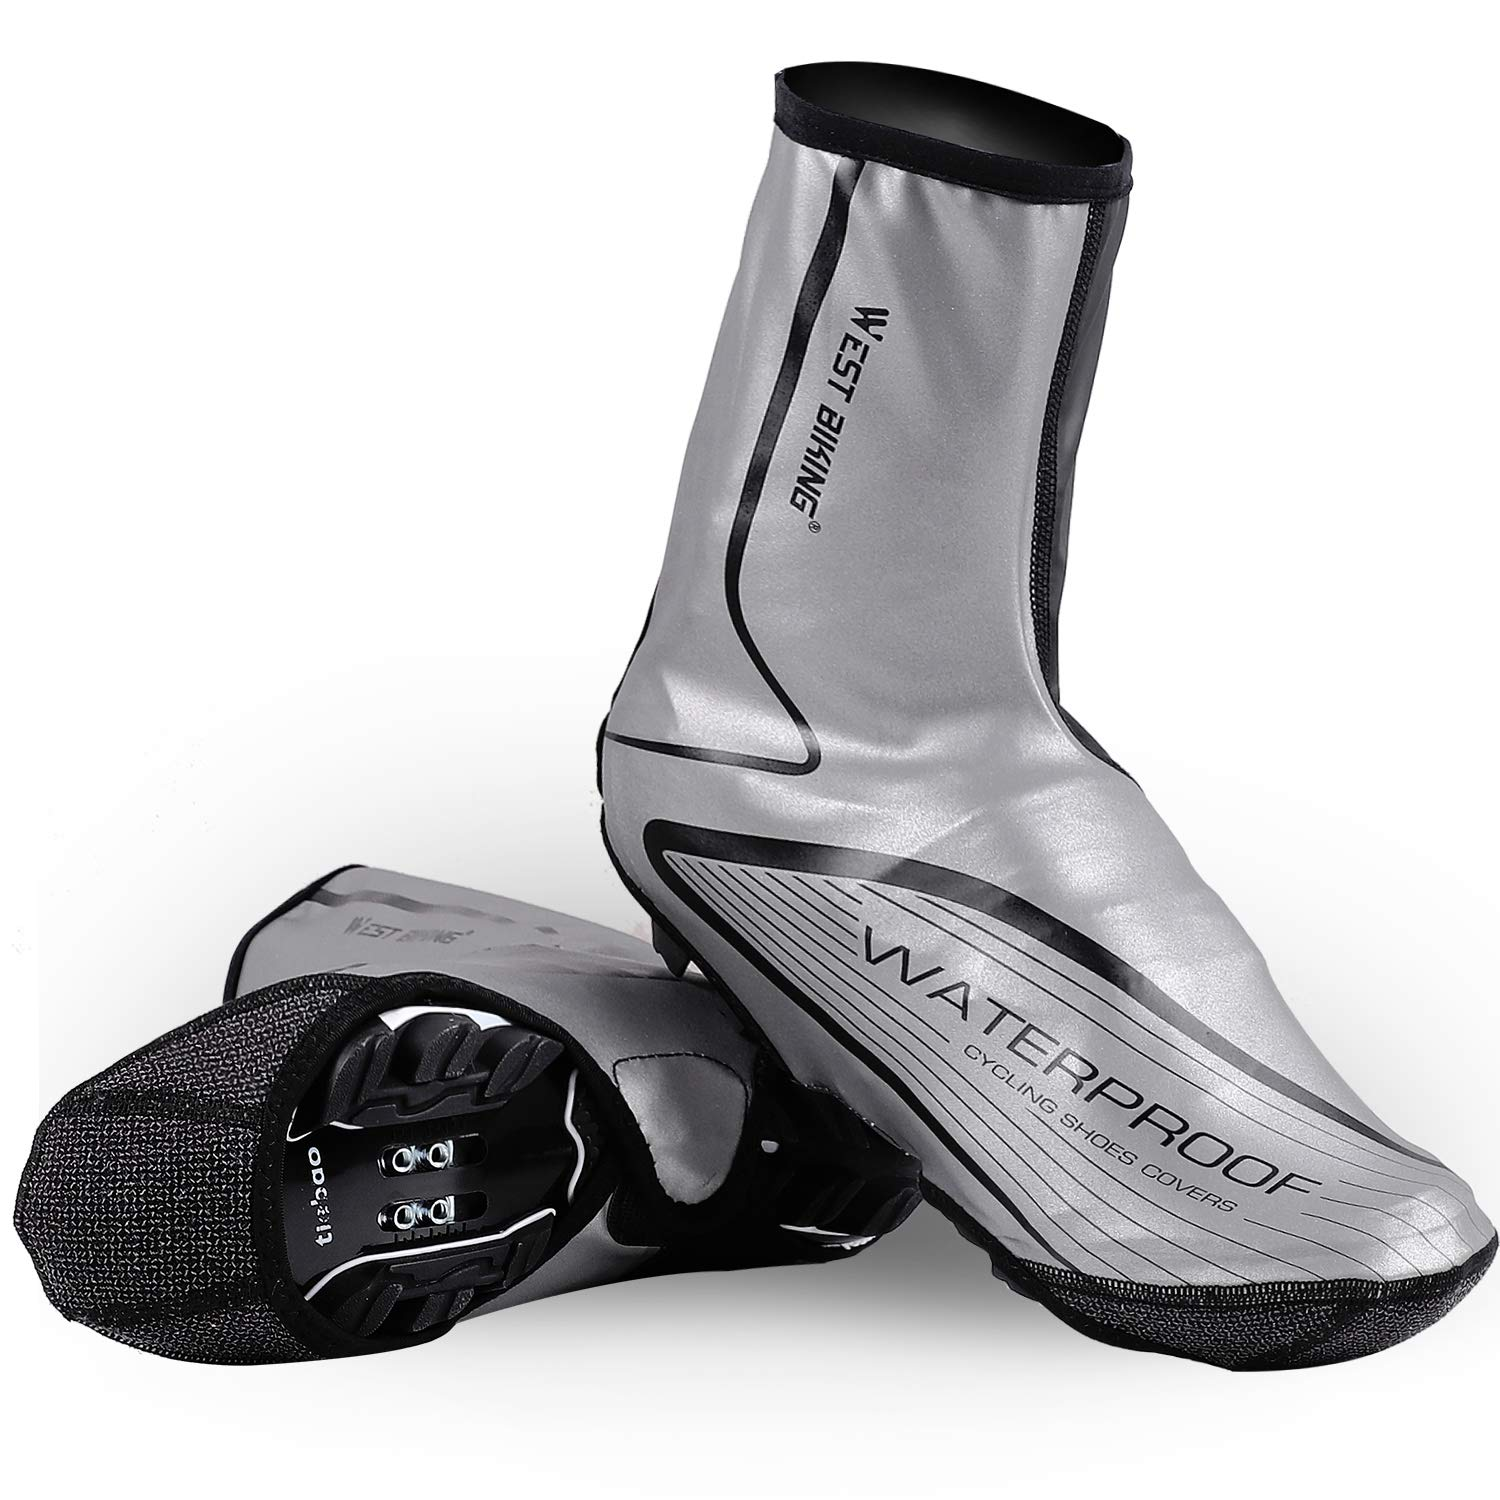 ICOCOPRO Cycling Shoes Cover Overshoes,Waterproof Reflective Thermal Winter Protector Bike Overshoes Rain Snow Boot Protector Feet Gaiters